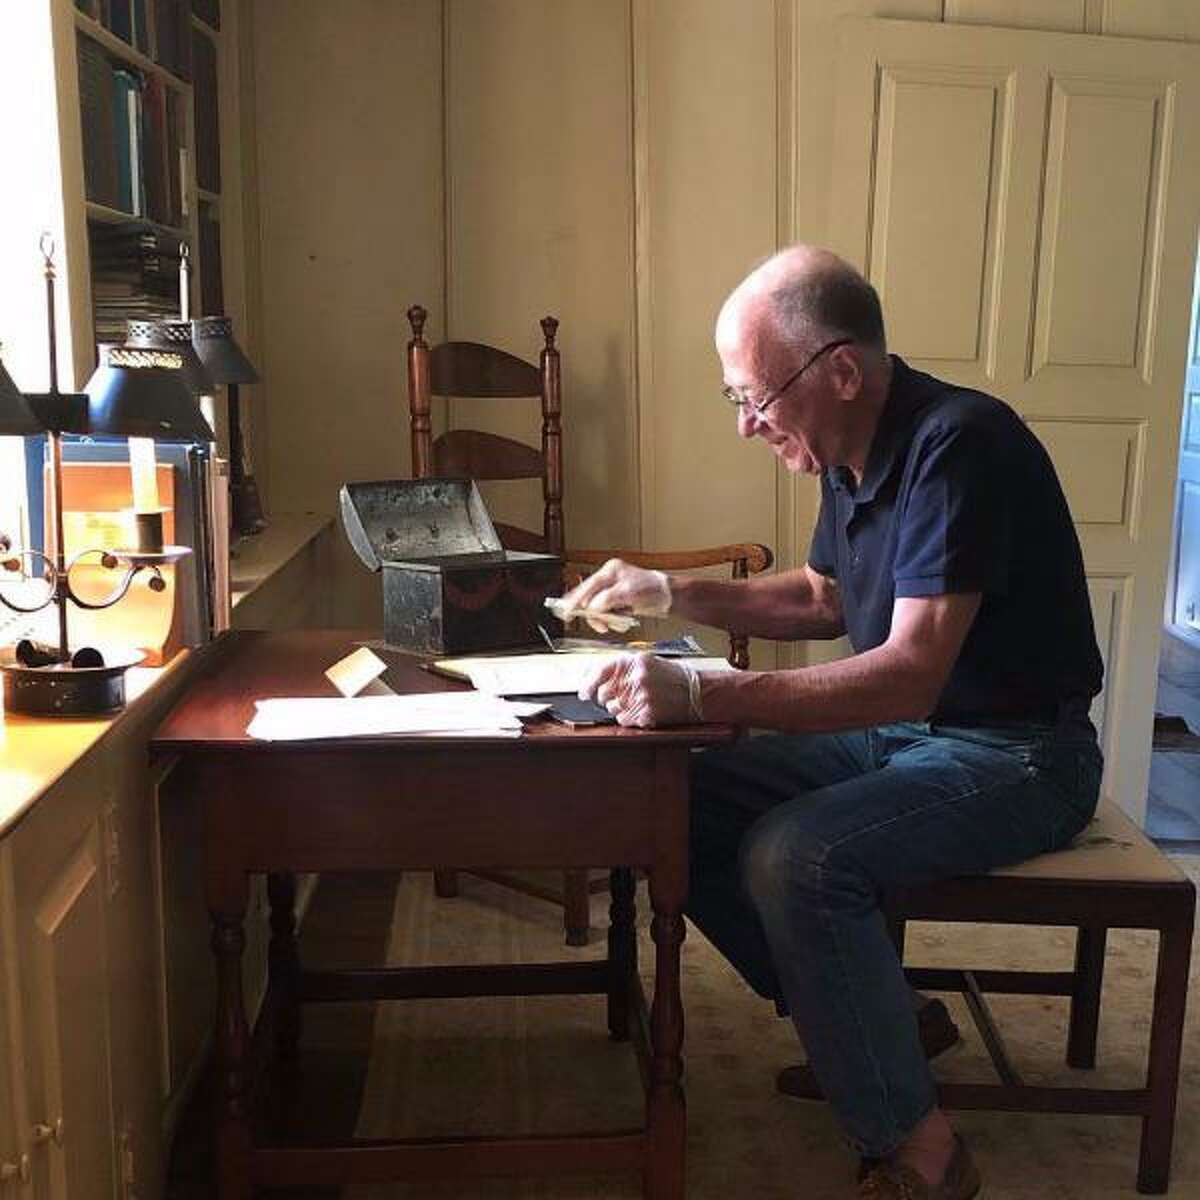 Docent Donn Smith going through old artifacts at the Mather Homestead and making blog posts of them.